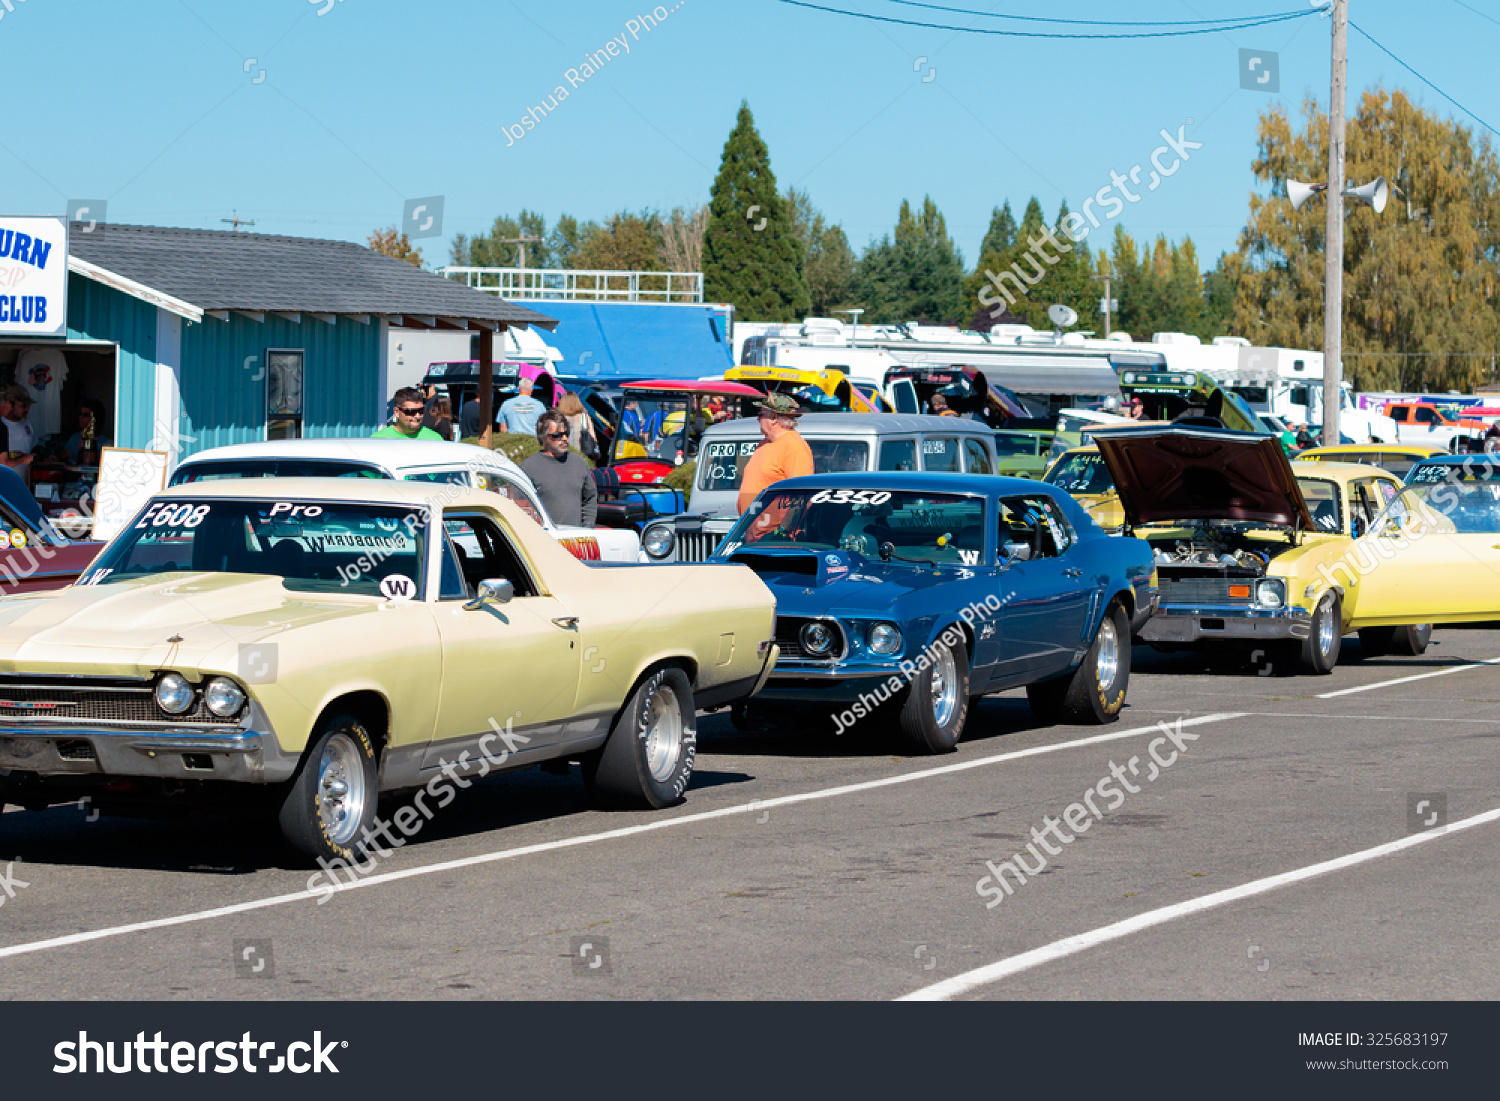 WOODBURN, OR - SEPTEMBER 27, 2015: Classic cars line up to race in